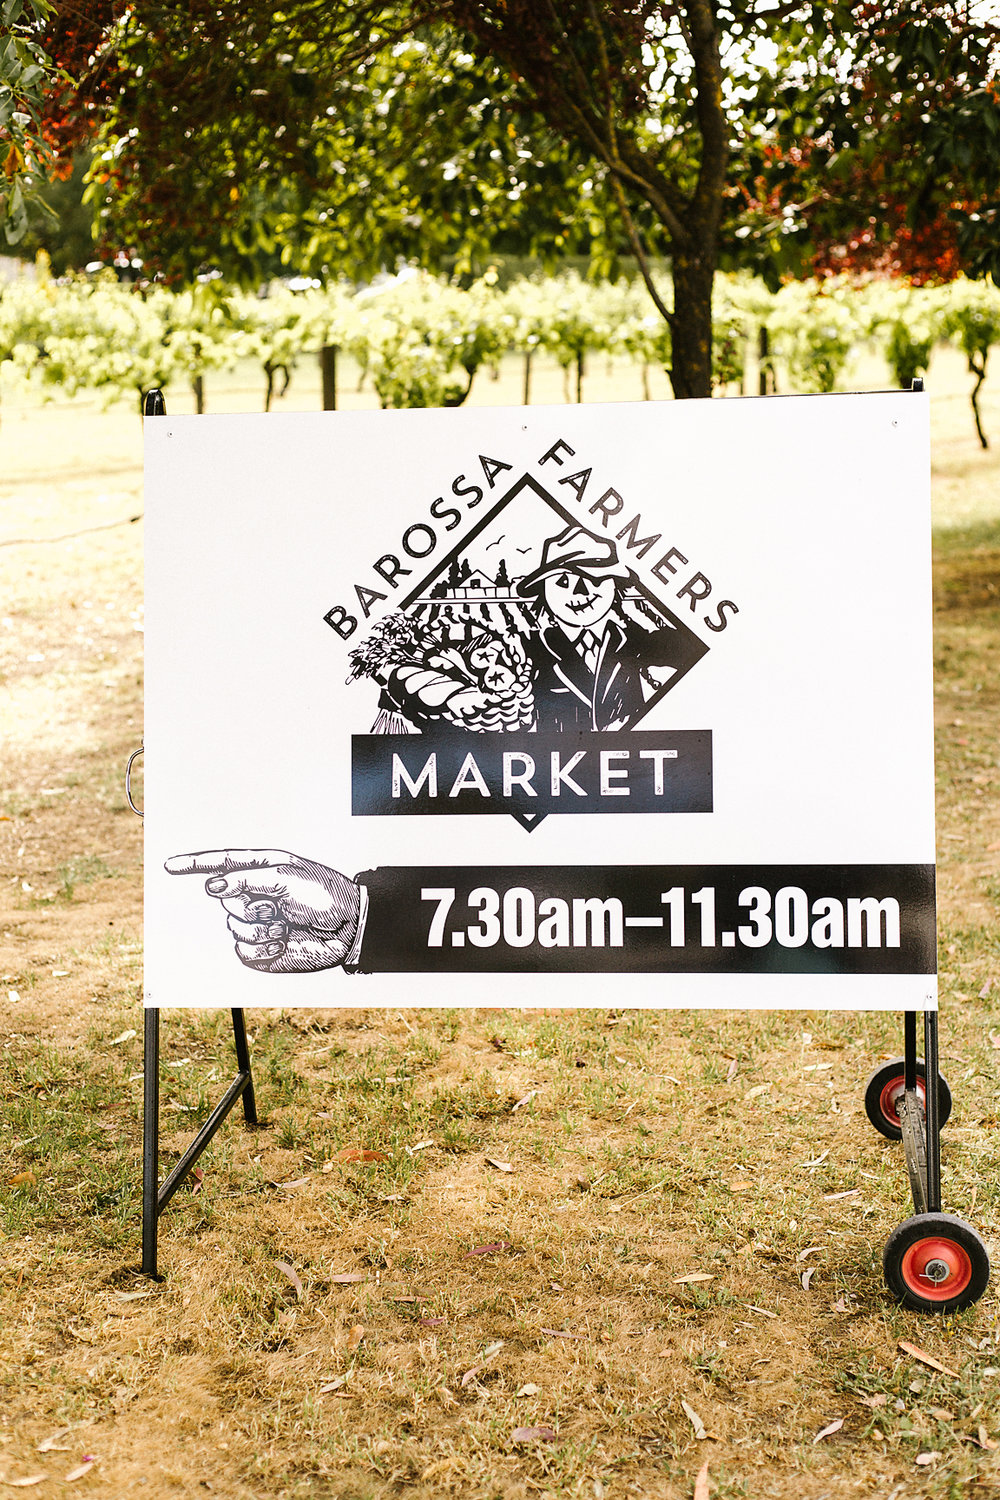 Barossa Farmer's Market is open on Saturday mornings